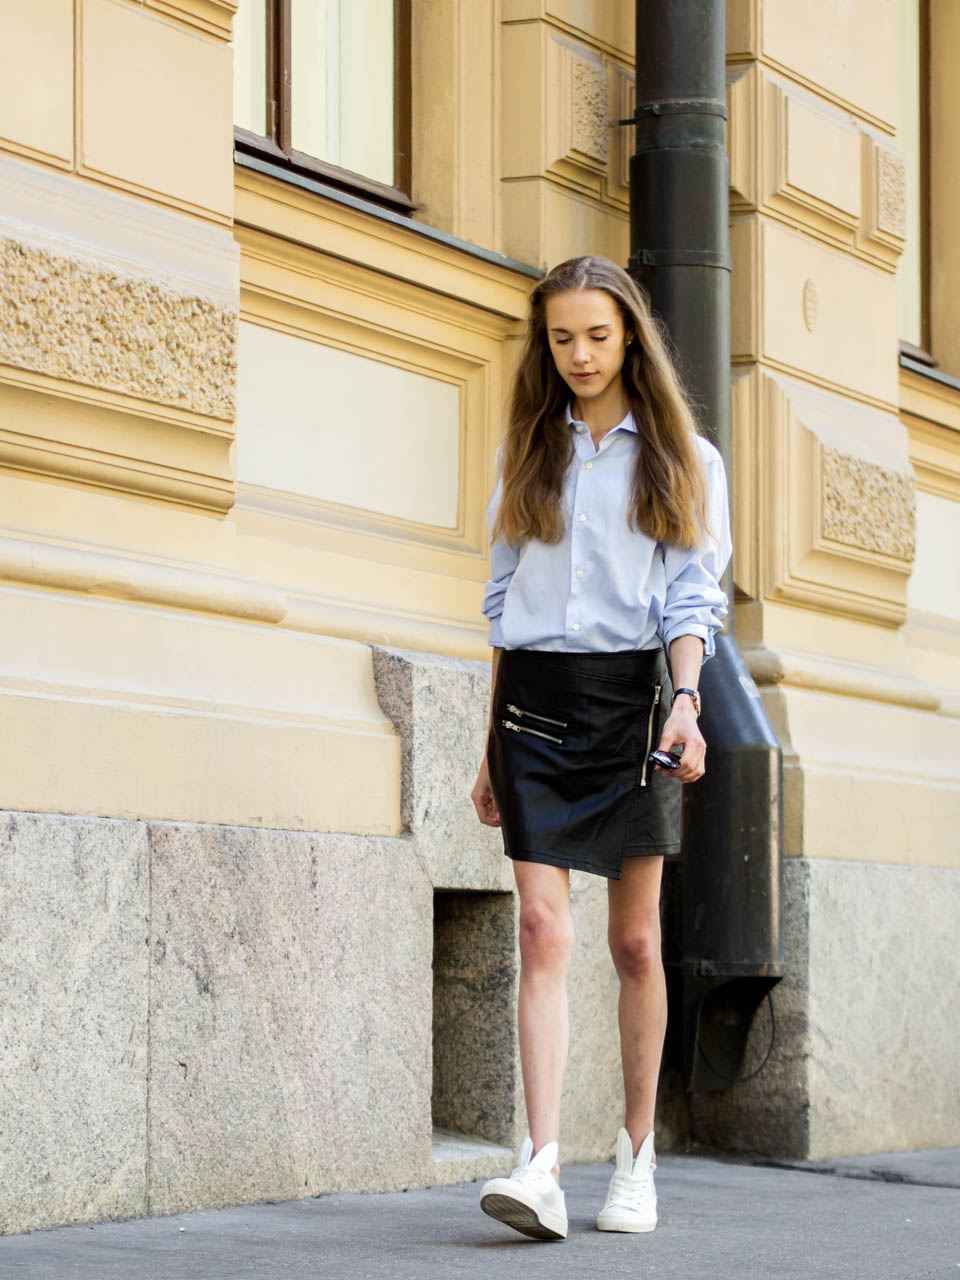 smart-casual-outfit-inspiration-minna-parikka-all-ears